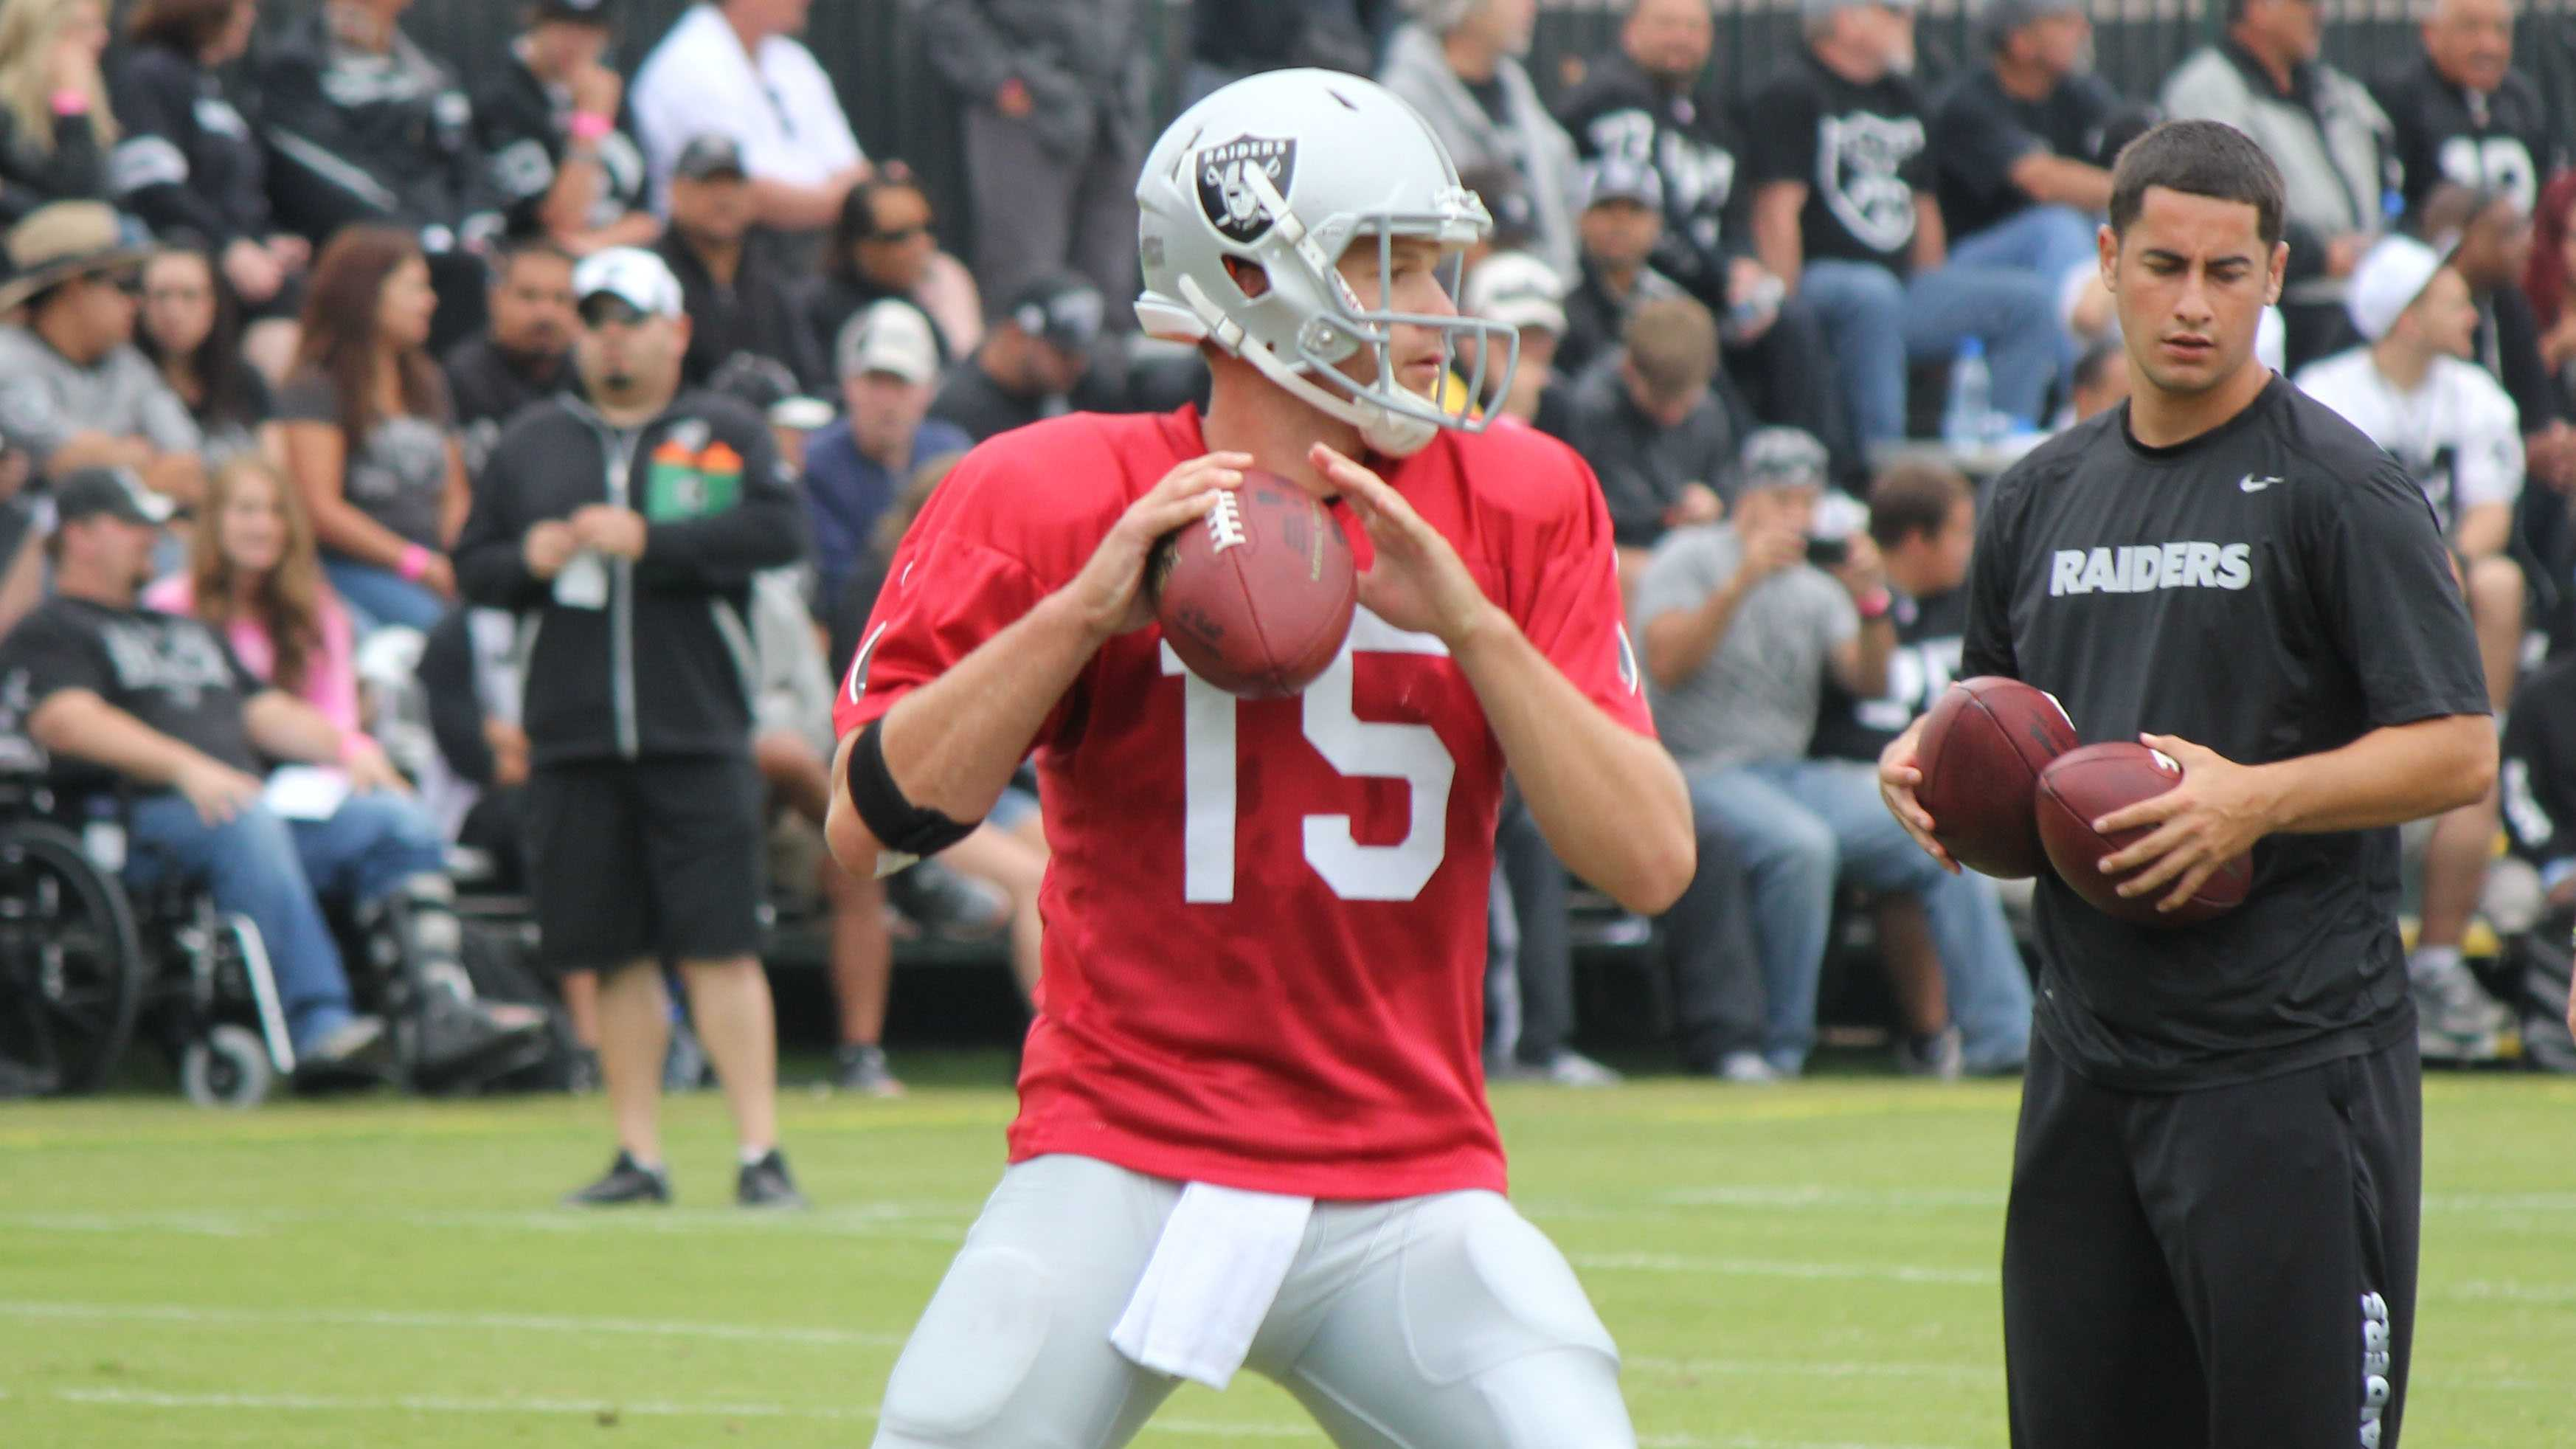 Matt Flynn, a free agent signing by the Raiders during the off-season, gets in some reps during training camp.